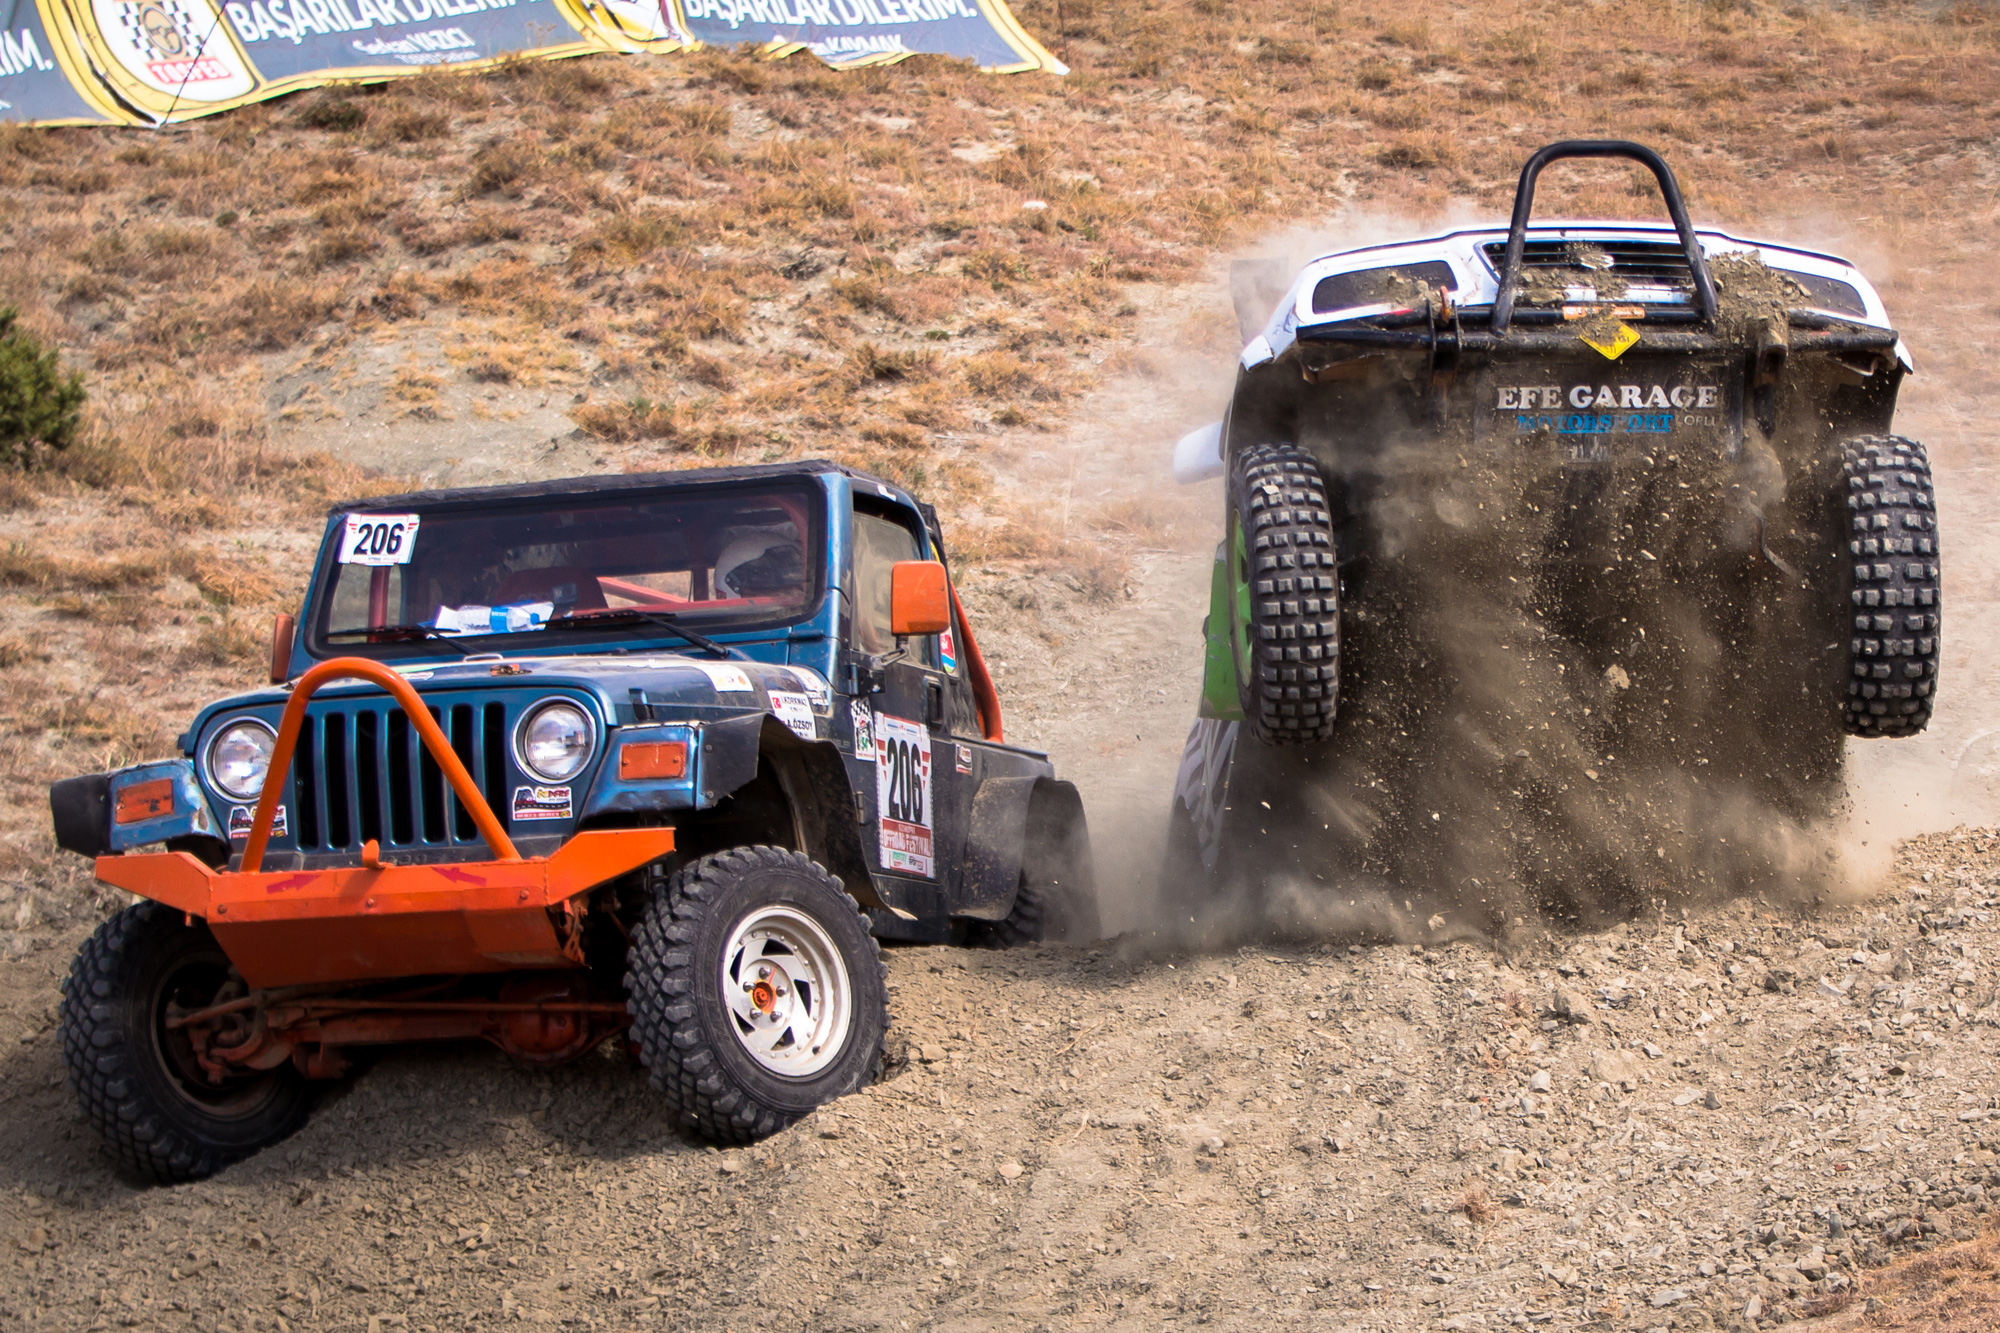 1520926924_2018_TOSFED_Offroad.jpg